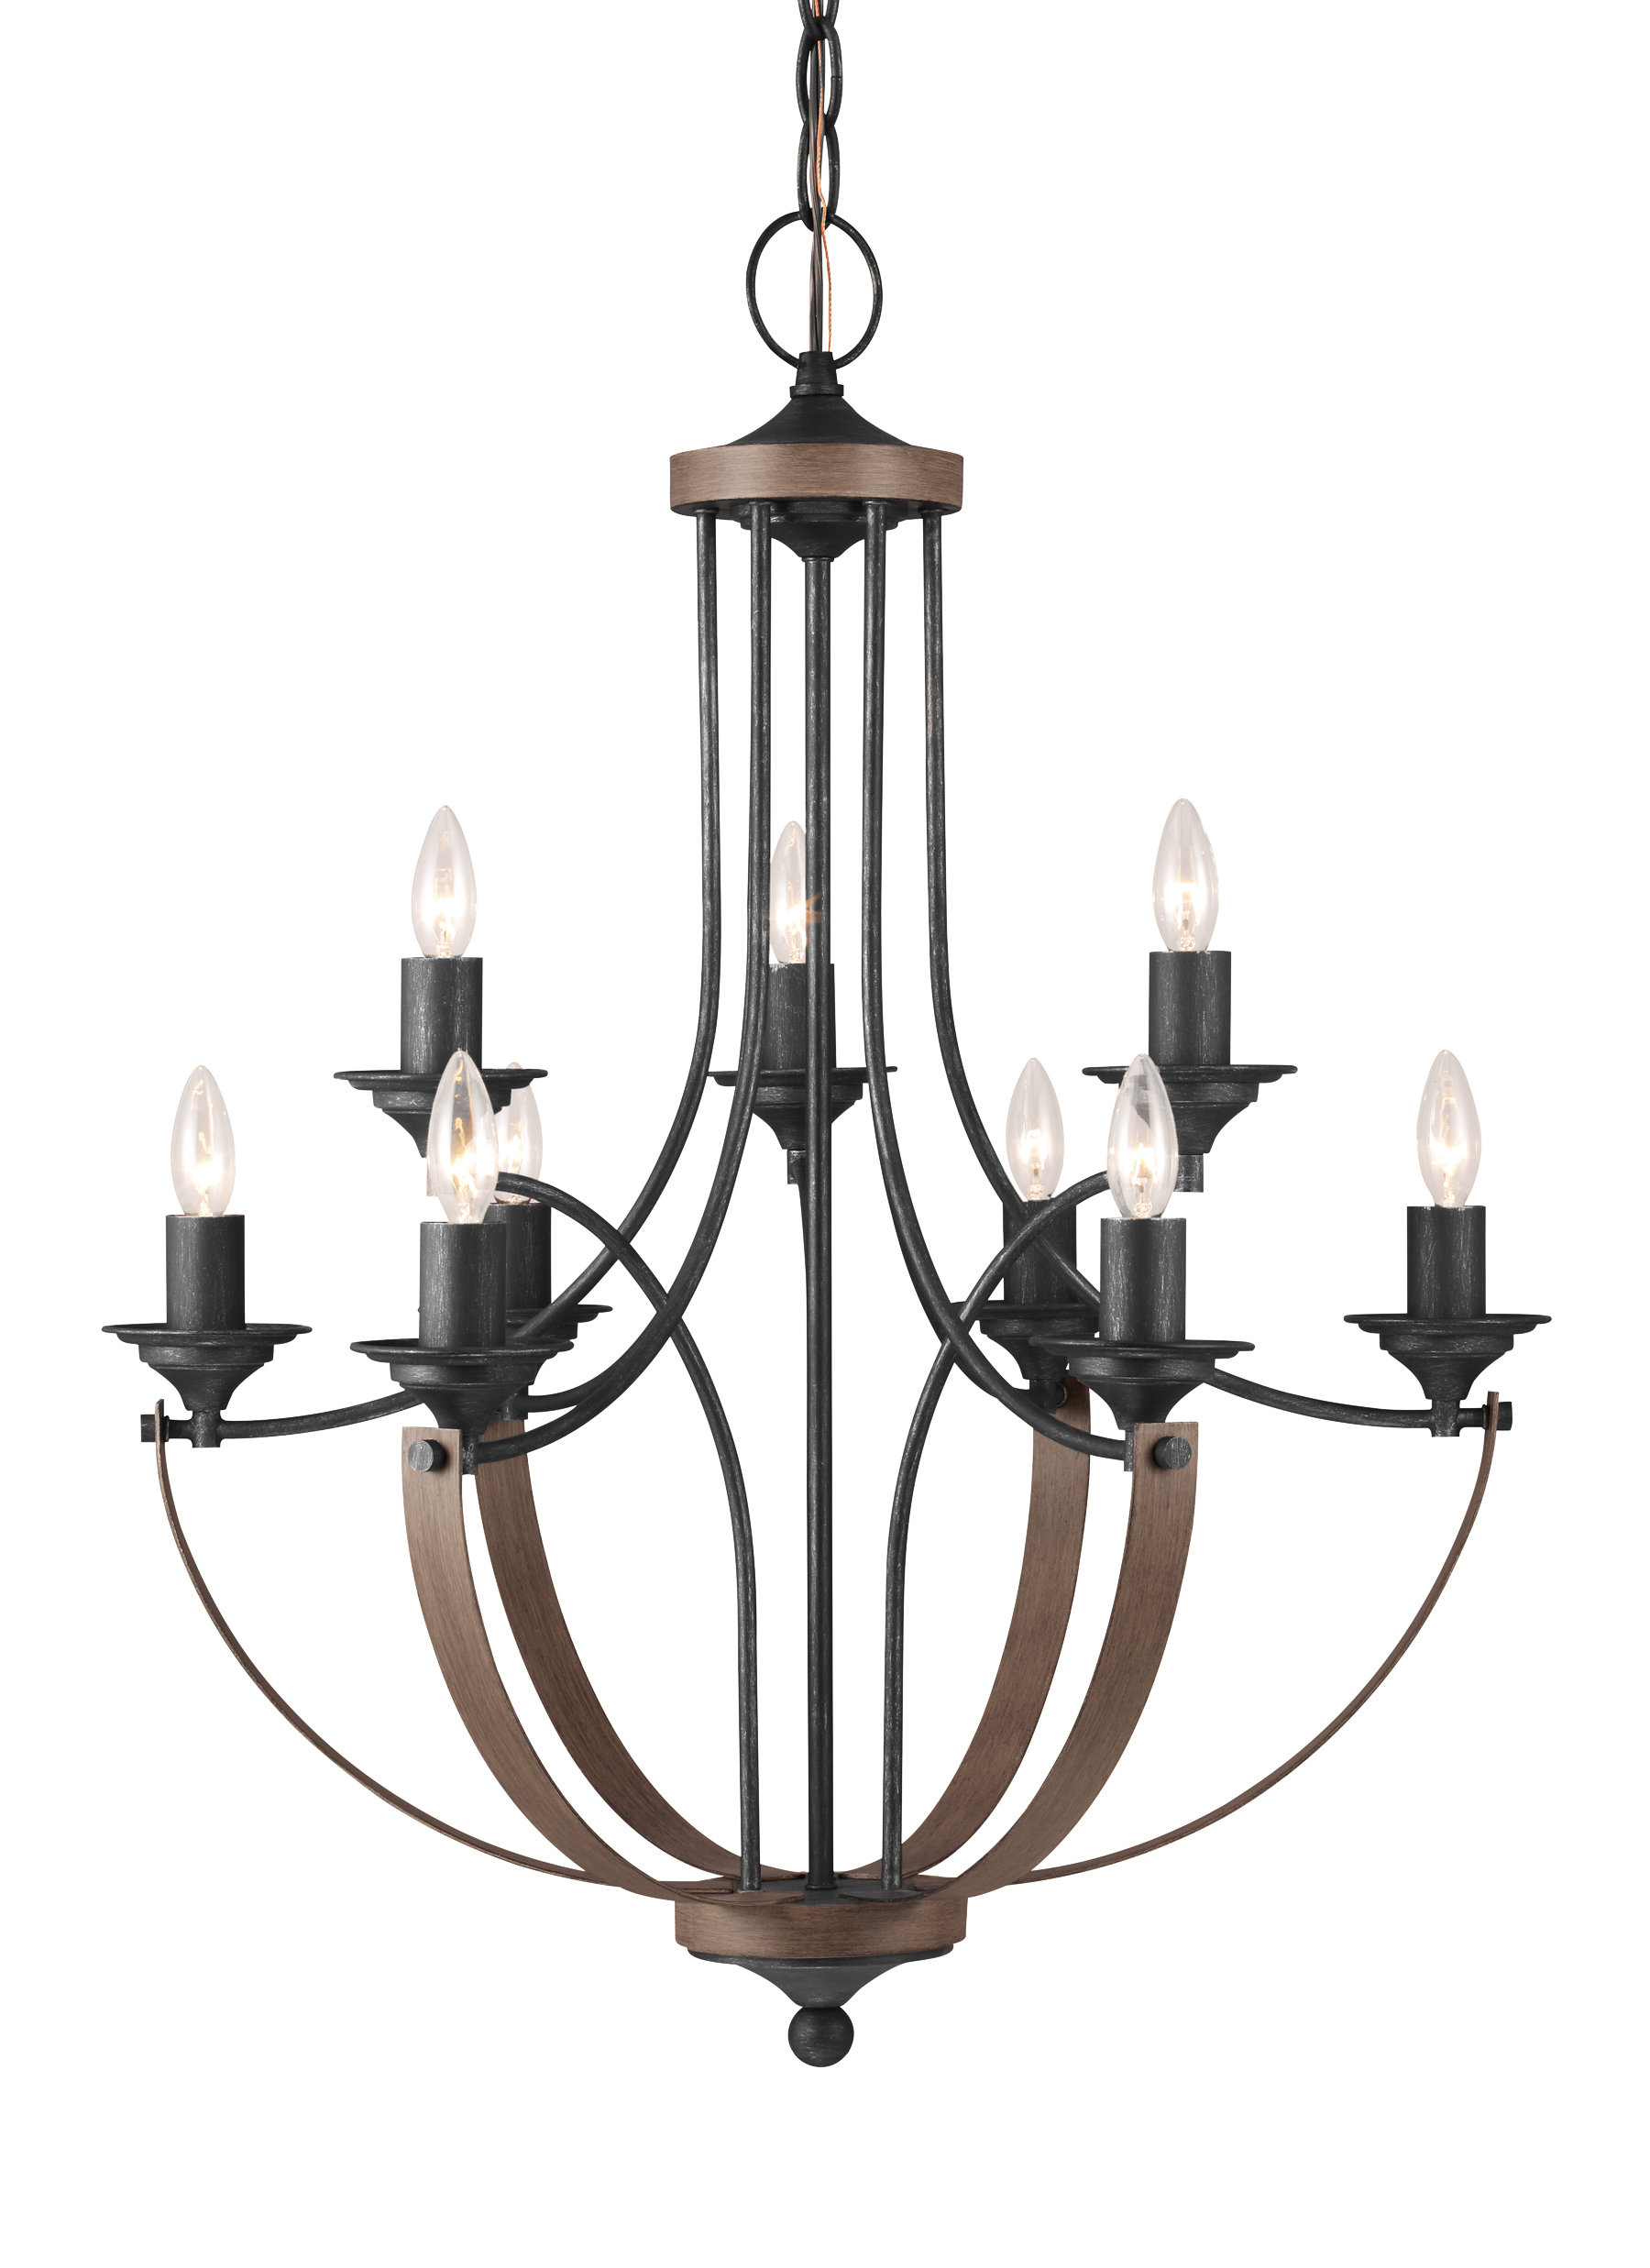 Camilla 9 Light Candle Style Chandelier Throughout Most Recently Released Camilla 9 Light Candle Style Chandeliers (View 3 of 25)